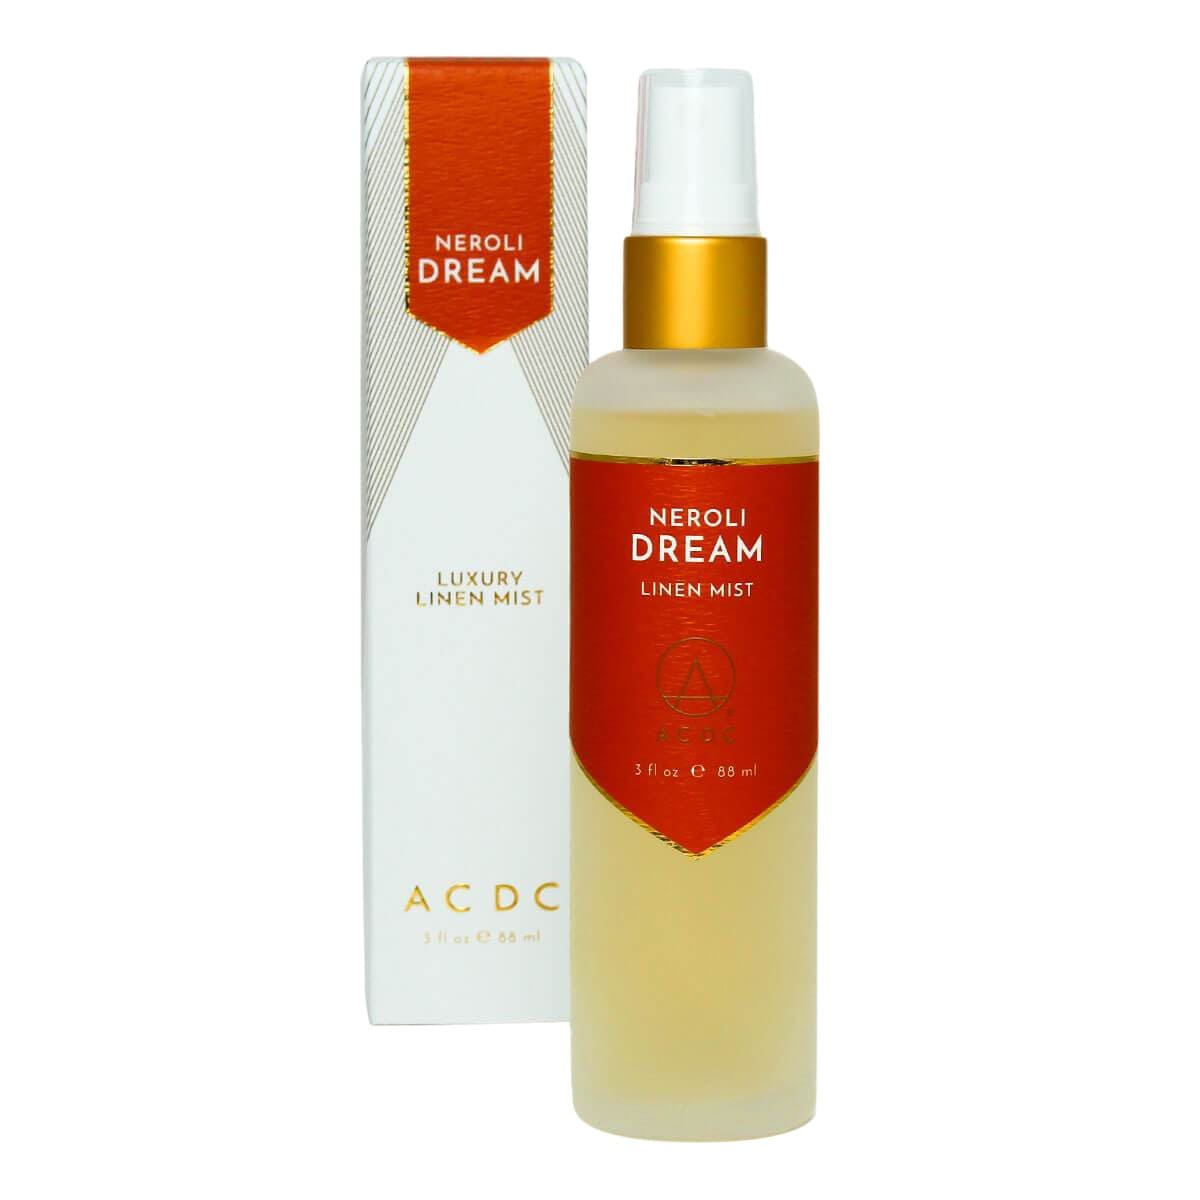 ACDC Candle Co Candles & Diffusers Neroli Dream Luxury Linen Mist